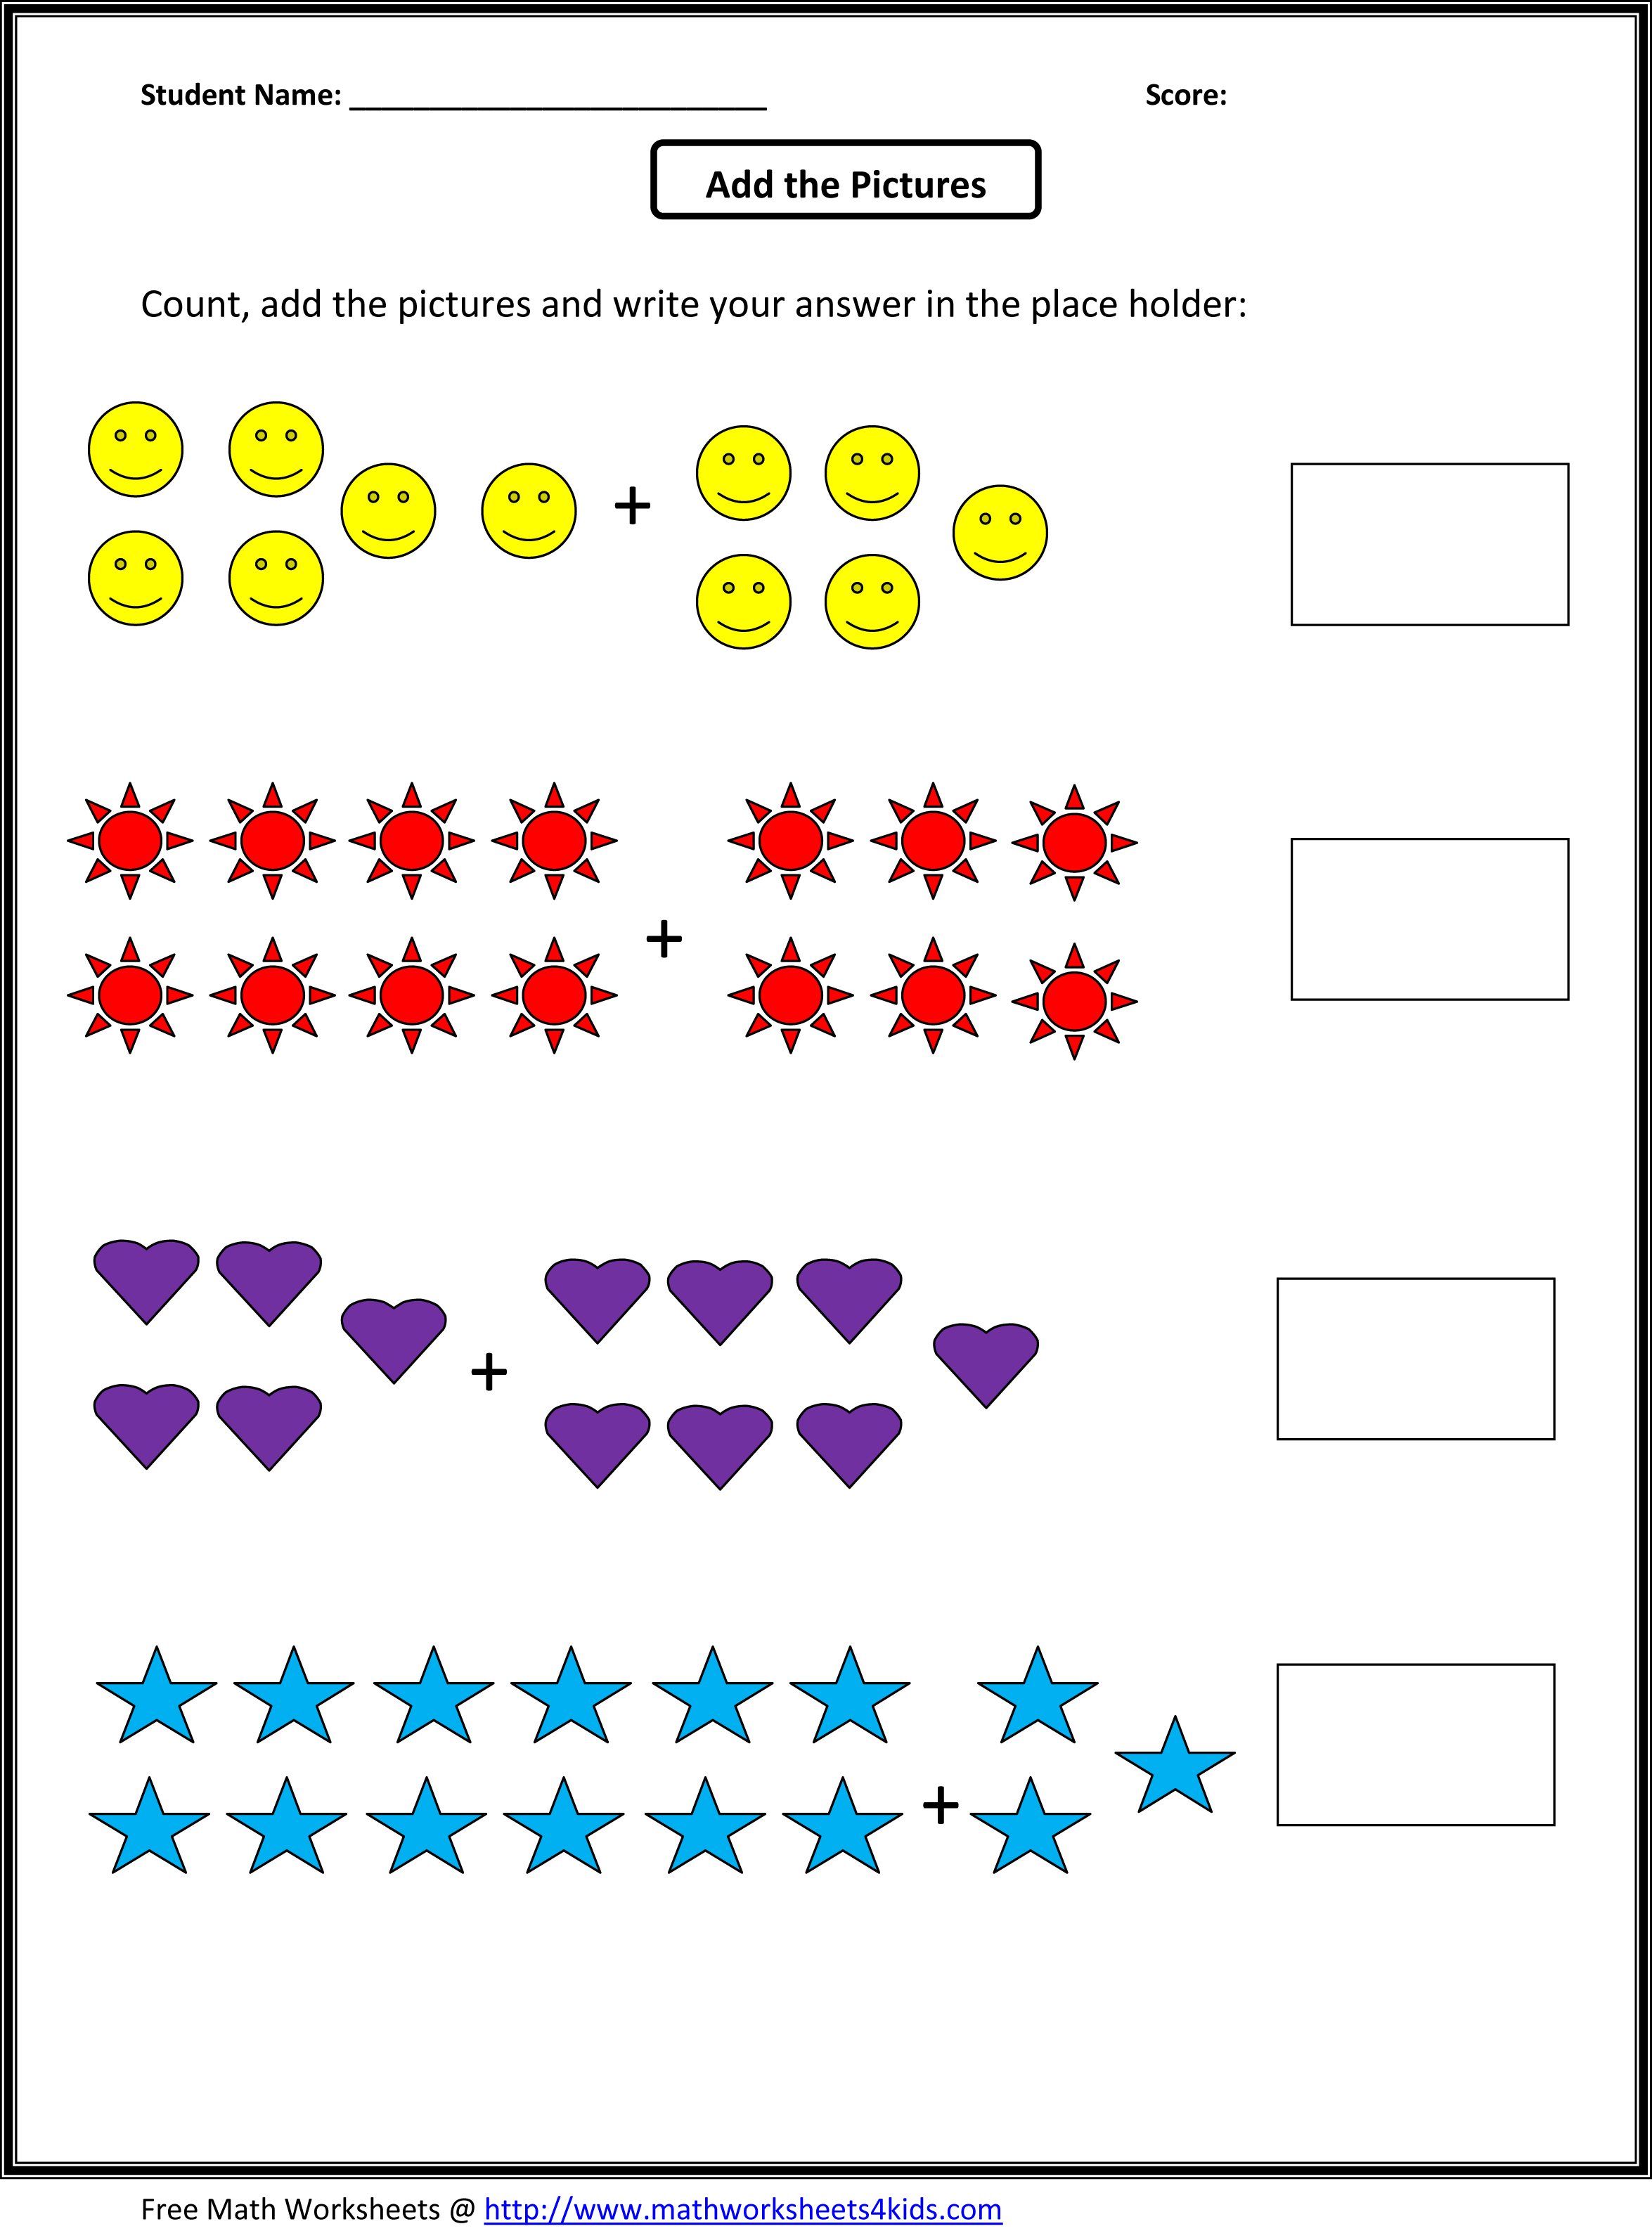 Weirdmailus  Terrific Grade  Maths Worksheet  Reocurent With Licious Math Worksheets For St Grade Free  Reocurent With Archaic Mad Minutes Multiplication Worksheets Also  X Tables Worksheet In Addition Describing Animals Worksheet And Following Directions Worksheets For Grade  As Well As Uppercase Handwriting Worksheets Additionally Writing In Cursive Worksheet From Reocurentcom With Weirdmailus  Licious Grade  Maths Worksheet  Reocurent With Archaic Math Worksheets For St Grade Free  Reocurent And Terrific Mad Minutes Multiplication Worksheets Also  X Tables Worksheet In Addition Describing Animals Worksheet From Reocurentcom